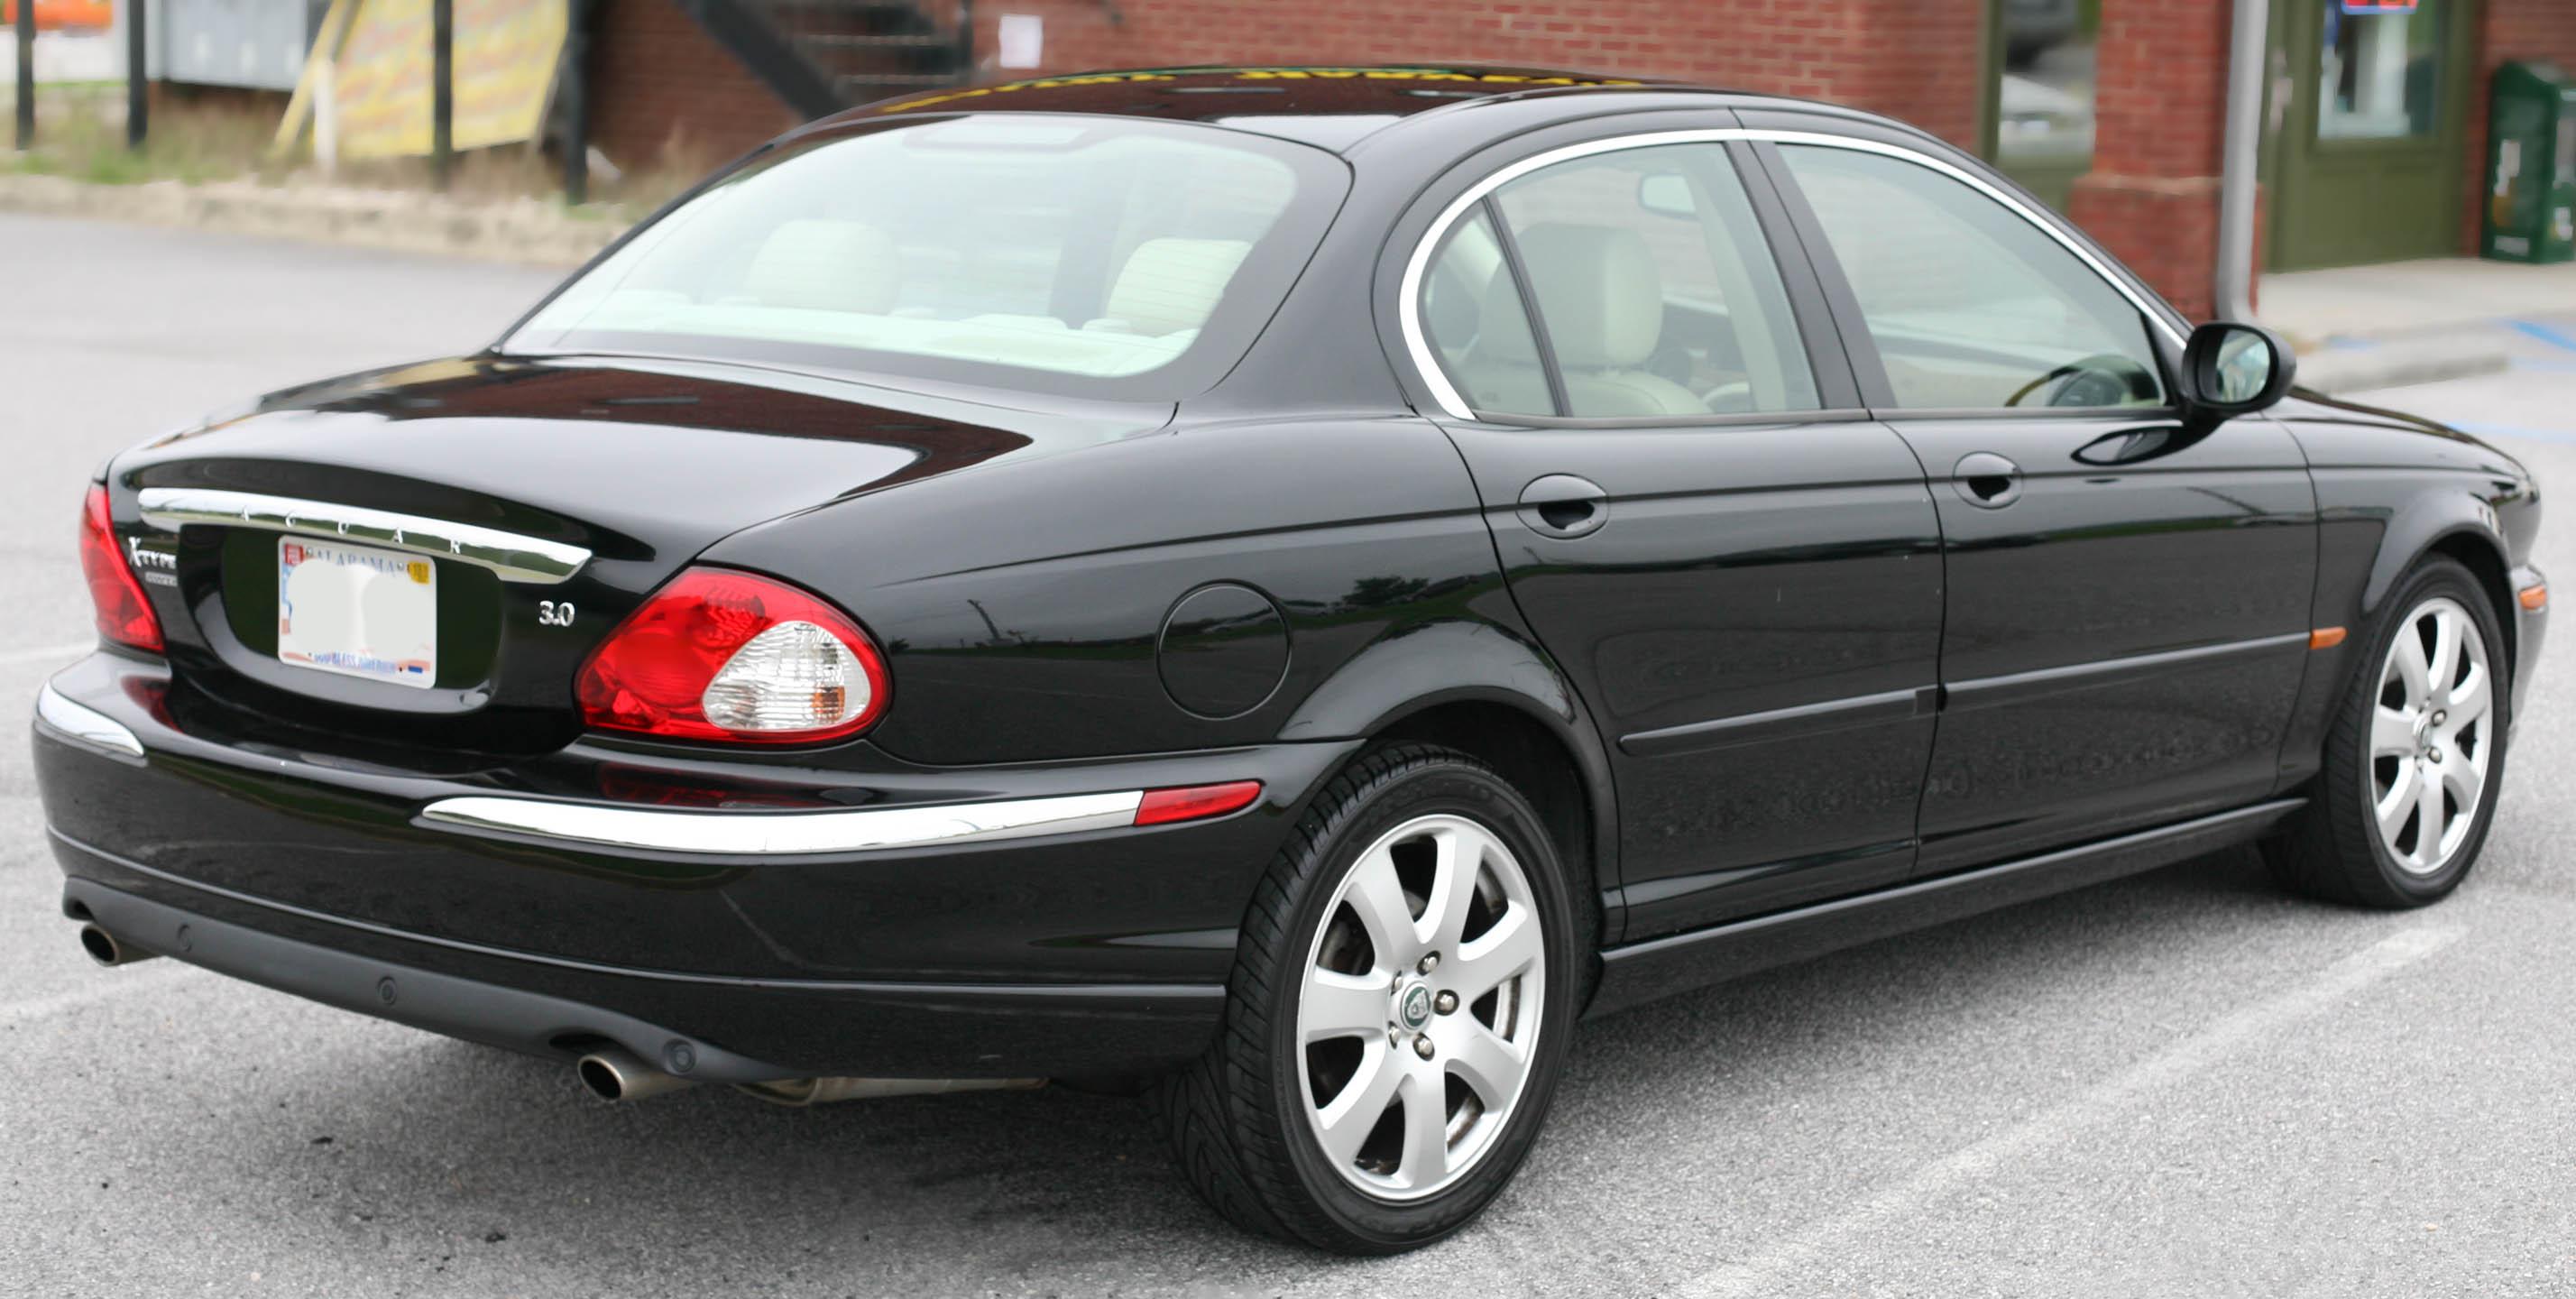 2004 jaguar x type information and photos zombiedrive. Black Bedroom Furniture Sets. Home Design Ideas